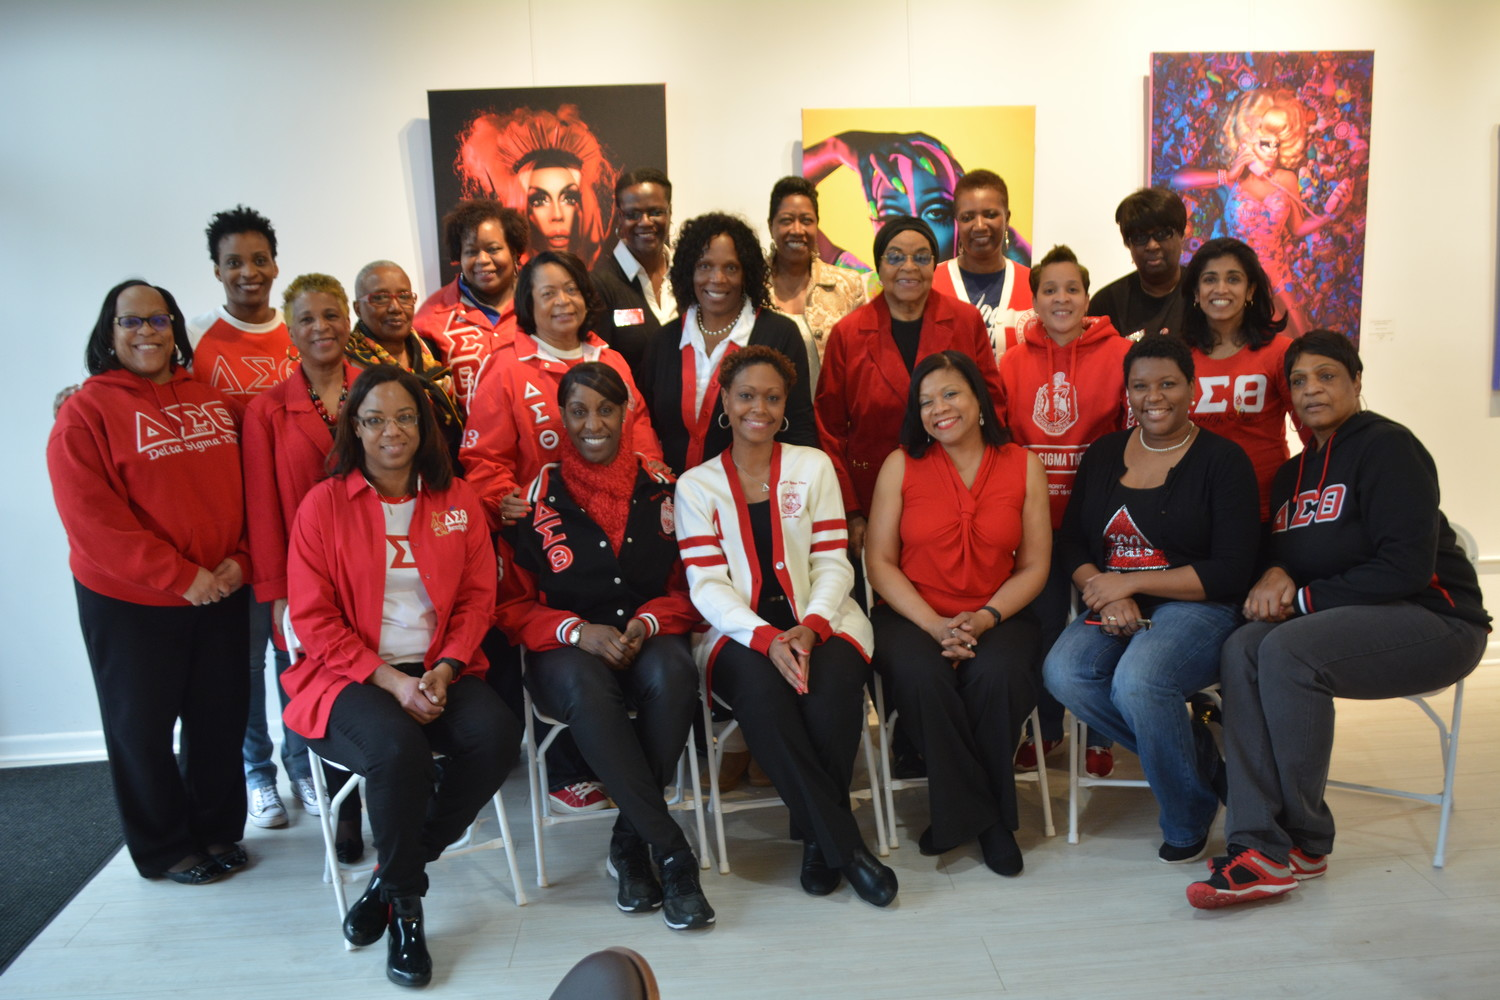 Members of the Nassau Alumnae Chapter of the Delta Sigma Theta sorority gathered to support Baldwin's local minority and women-owned businesses last Saturday.